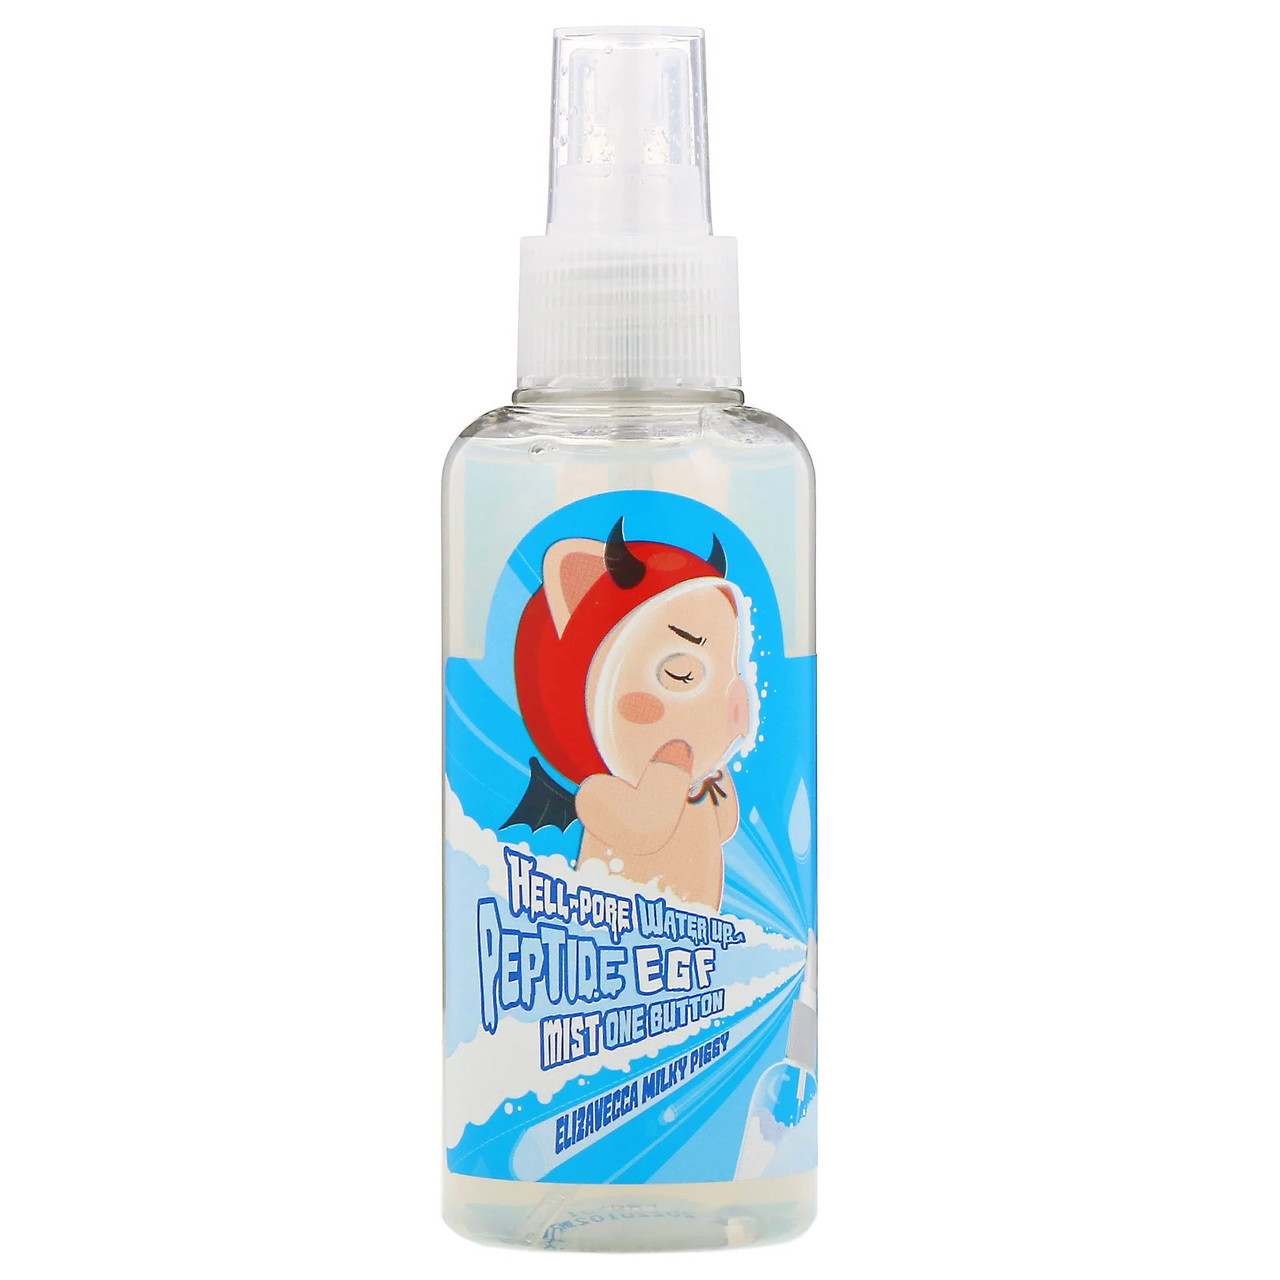 Мист для лица с пептидами Elizavecca Hell-Pore Water Up Peptide EGF Mist One Button 150 мл (8809418751205)